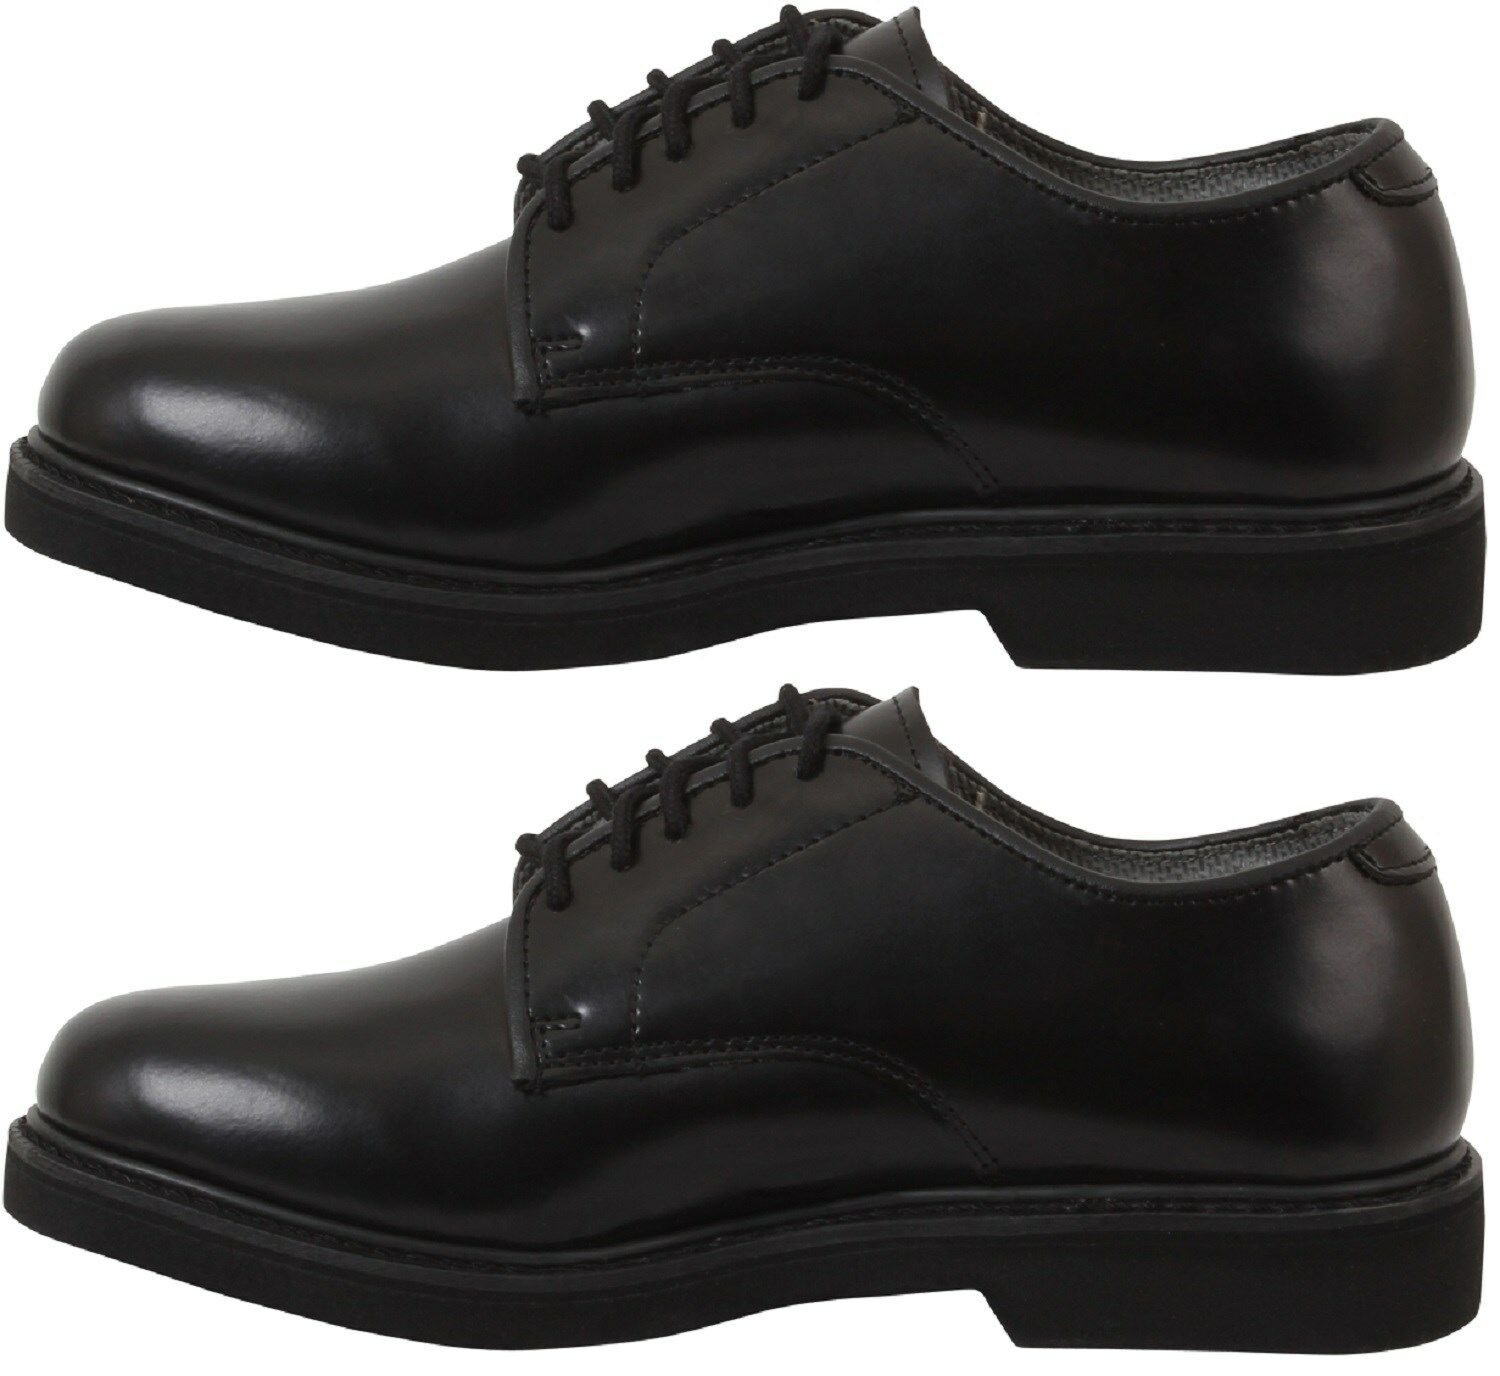 Uniform Soft Sole Oxford Dress Shoe For military & Band & Law Enforcement 5085